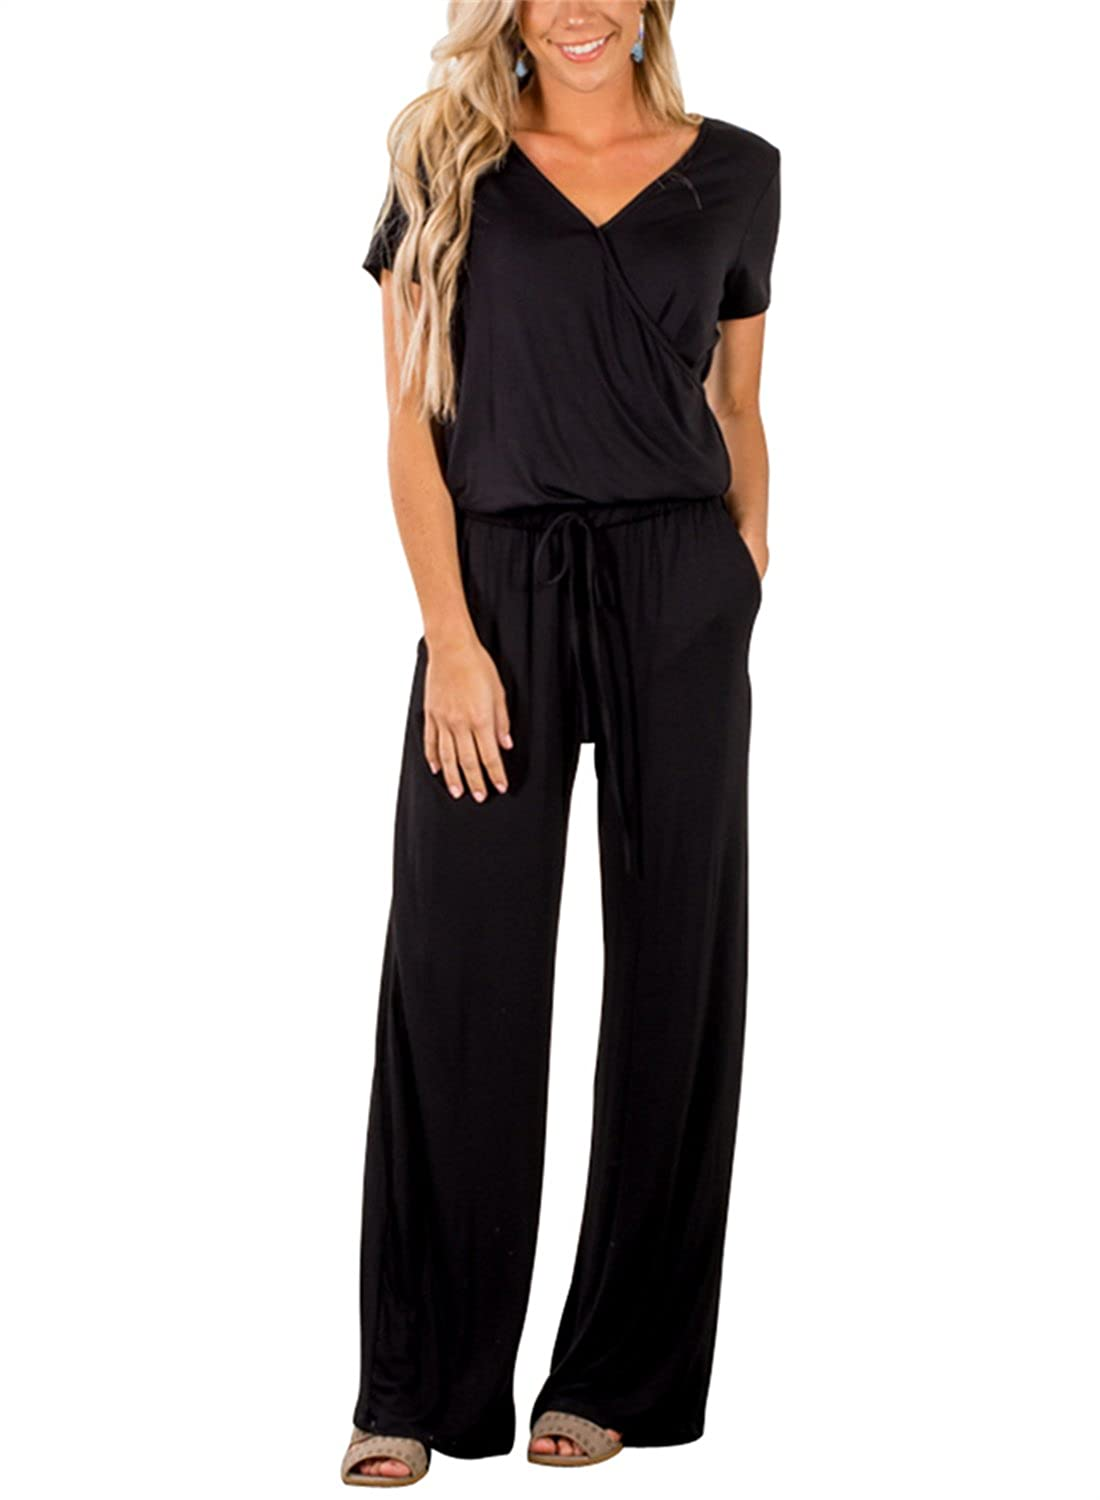 9f23ffa2b125 Top 10 wholesale Long Sleeve V Neck Jumpsuit - Chinabrands.com